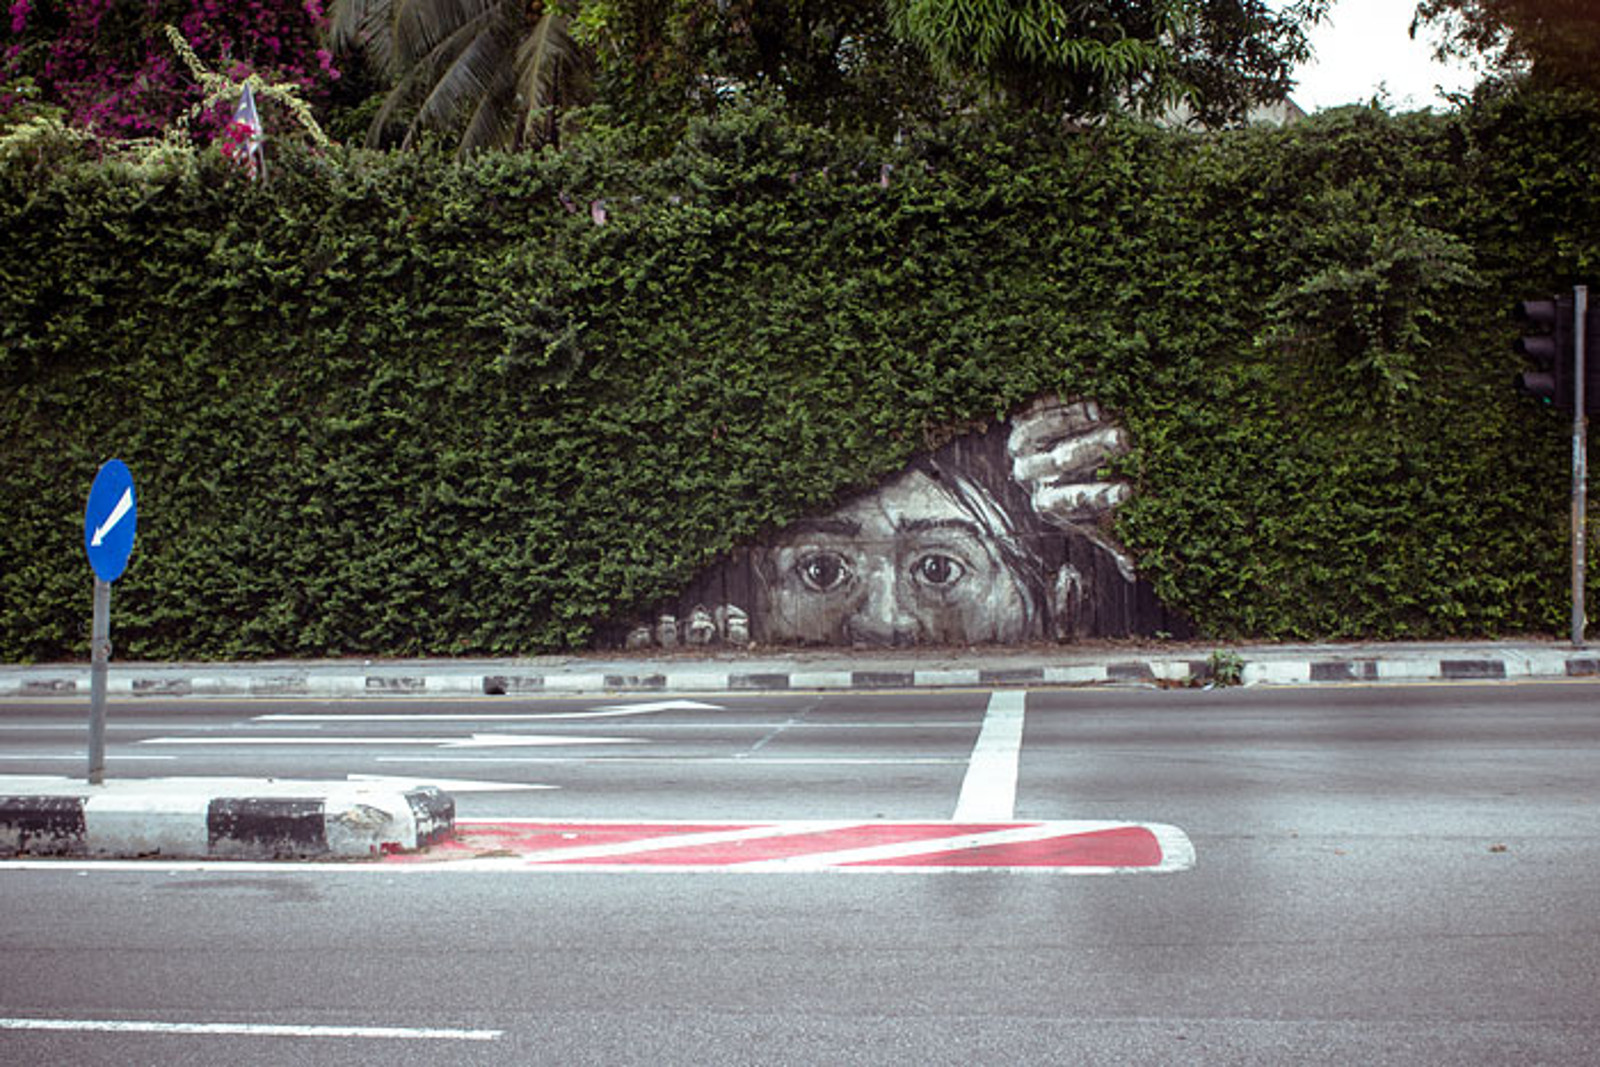 These Awesome Graffiti Artists Are Shaking Up the way We Think About Our Relationship With Nature